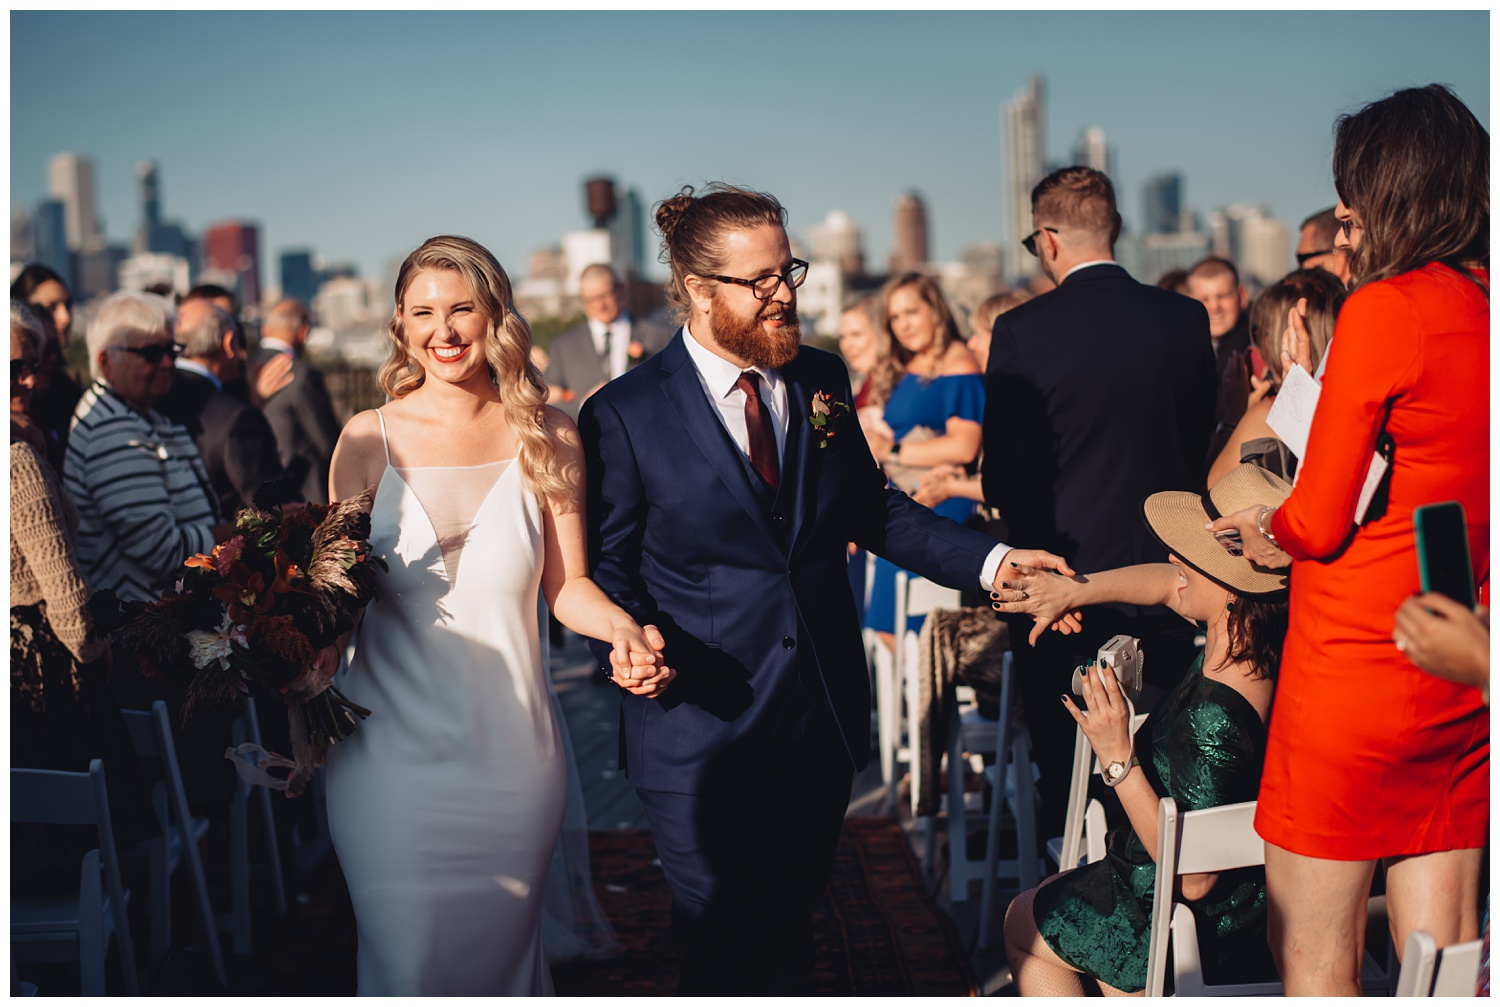 Lacuna Lofts Chicago Wedding Photography - The Adamkovi, rooftop ceremony